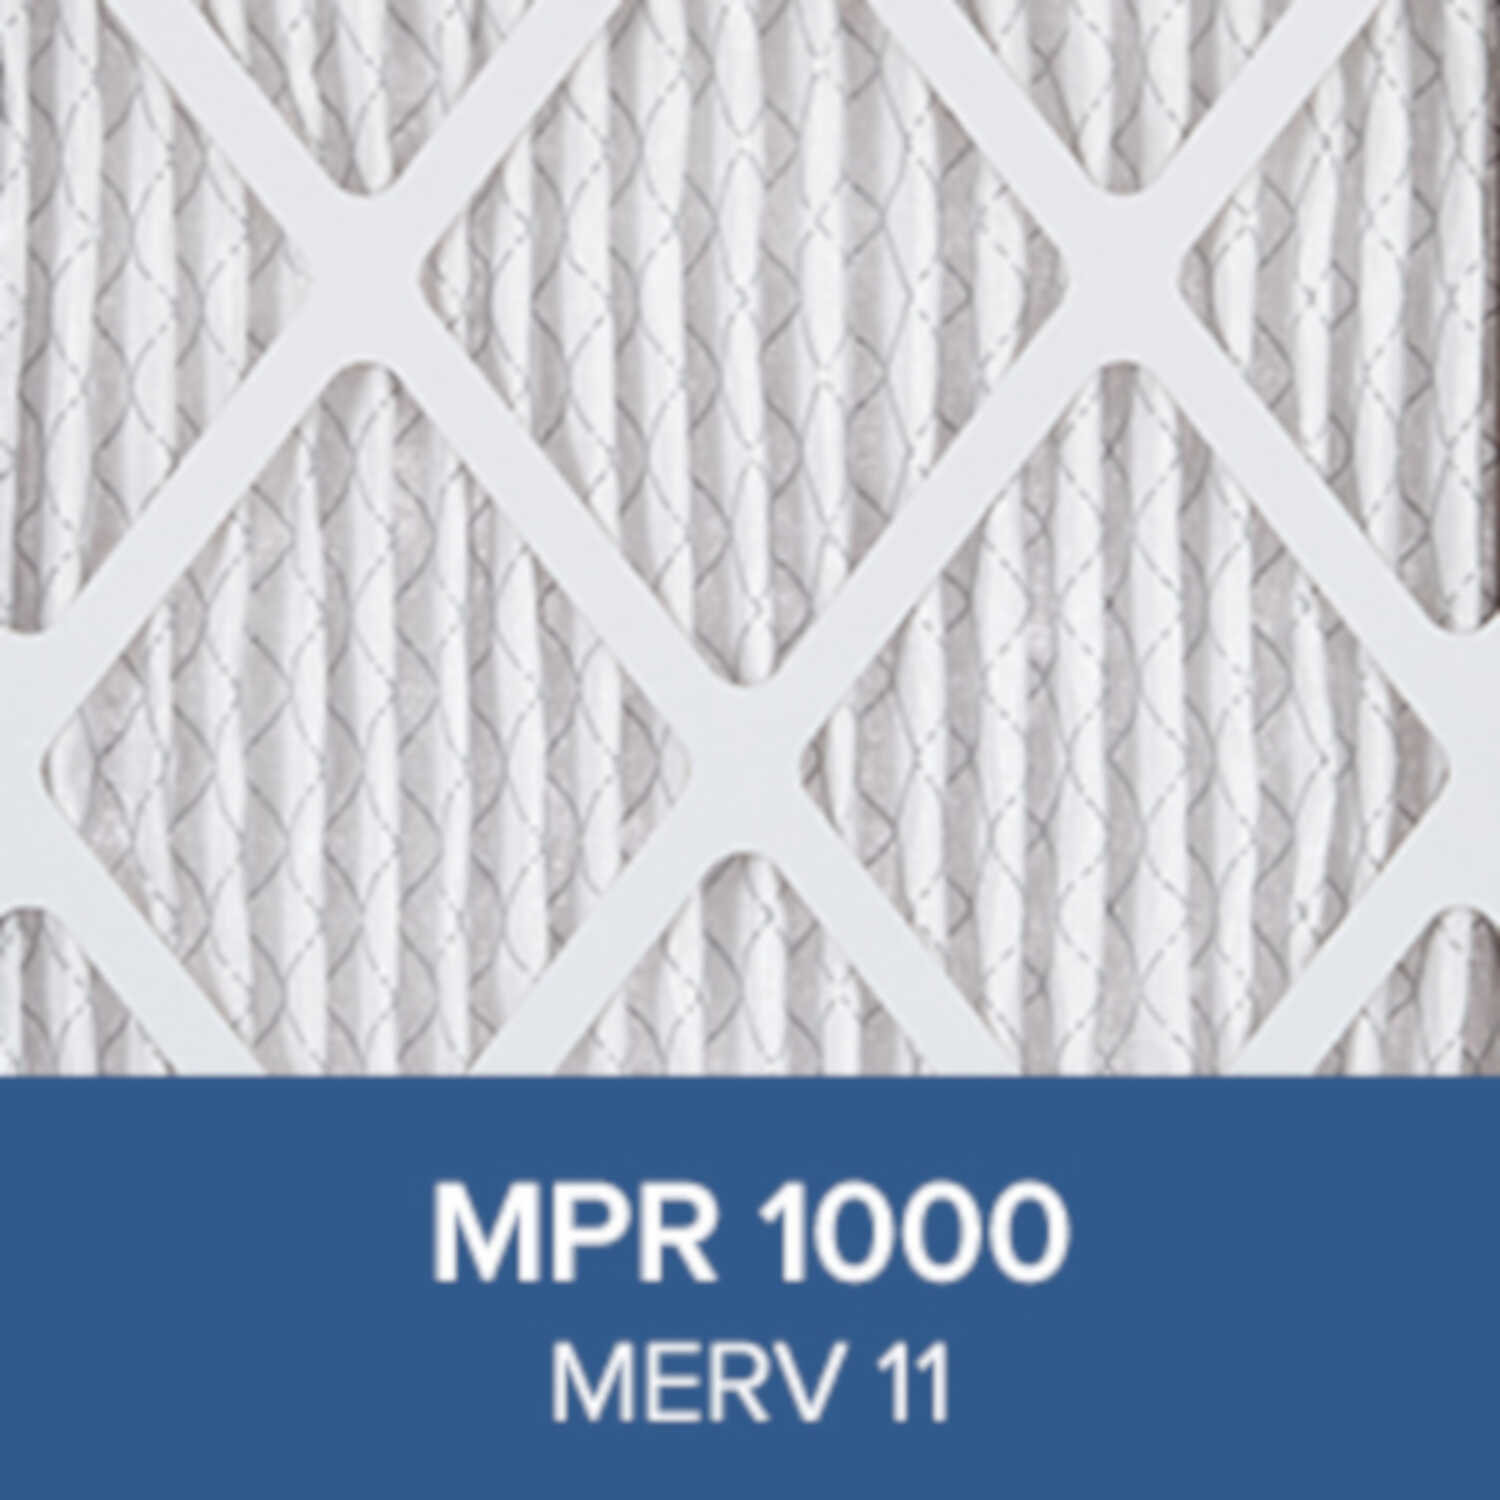 3M  Filtrete  14 in. W x 25 in. H x 1 in. D 11 MERV Pleated Air Filter